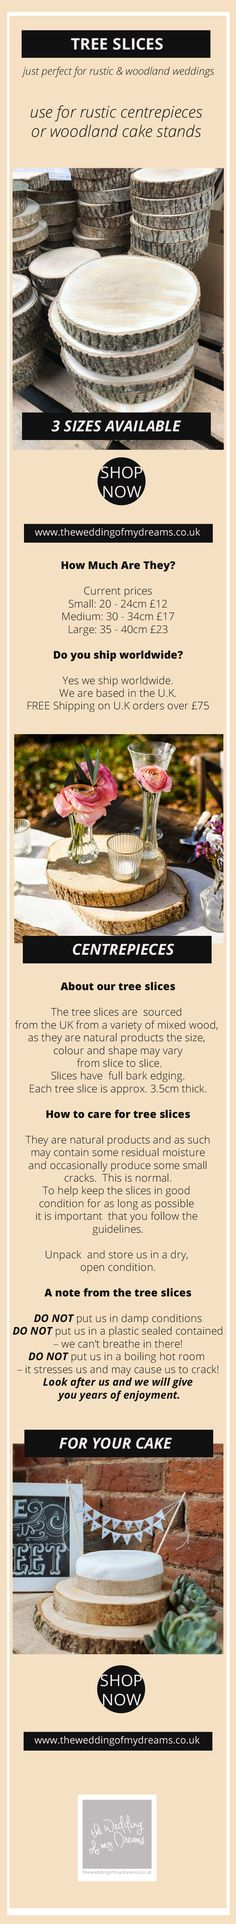 Tree Slices / Tree Slabs make Rustic Wedding Centrepieces or Cake Stands.   Buy Online | Worldwide Shipping